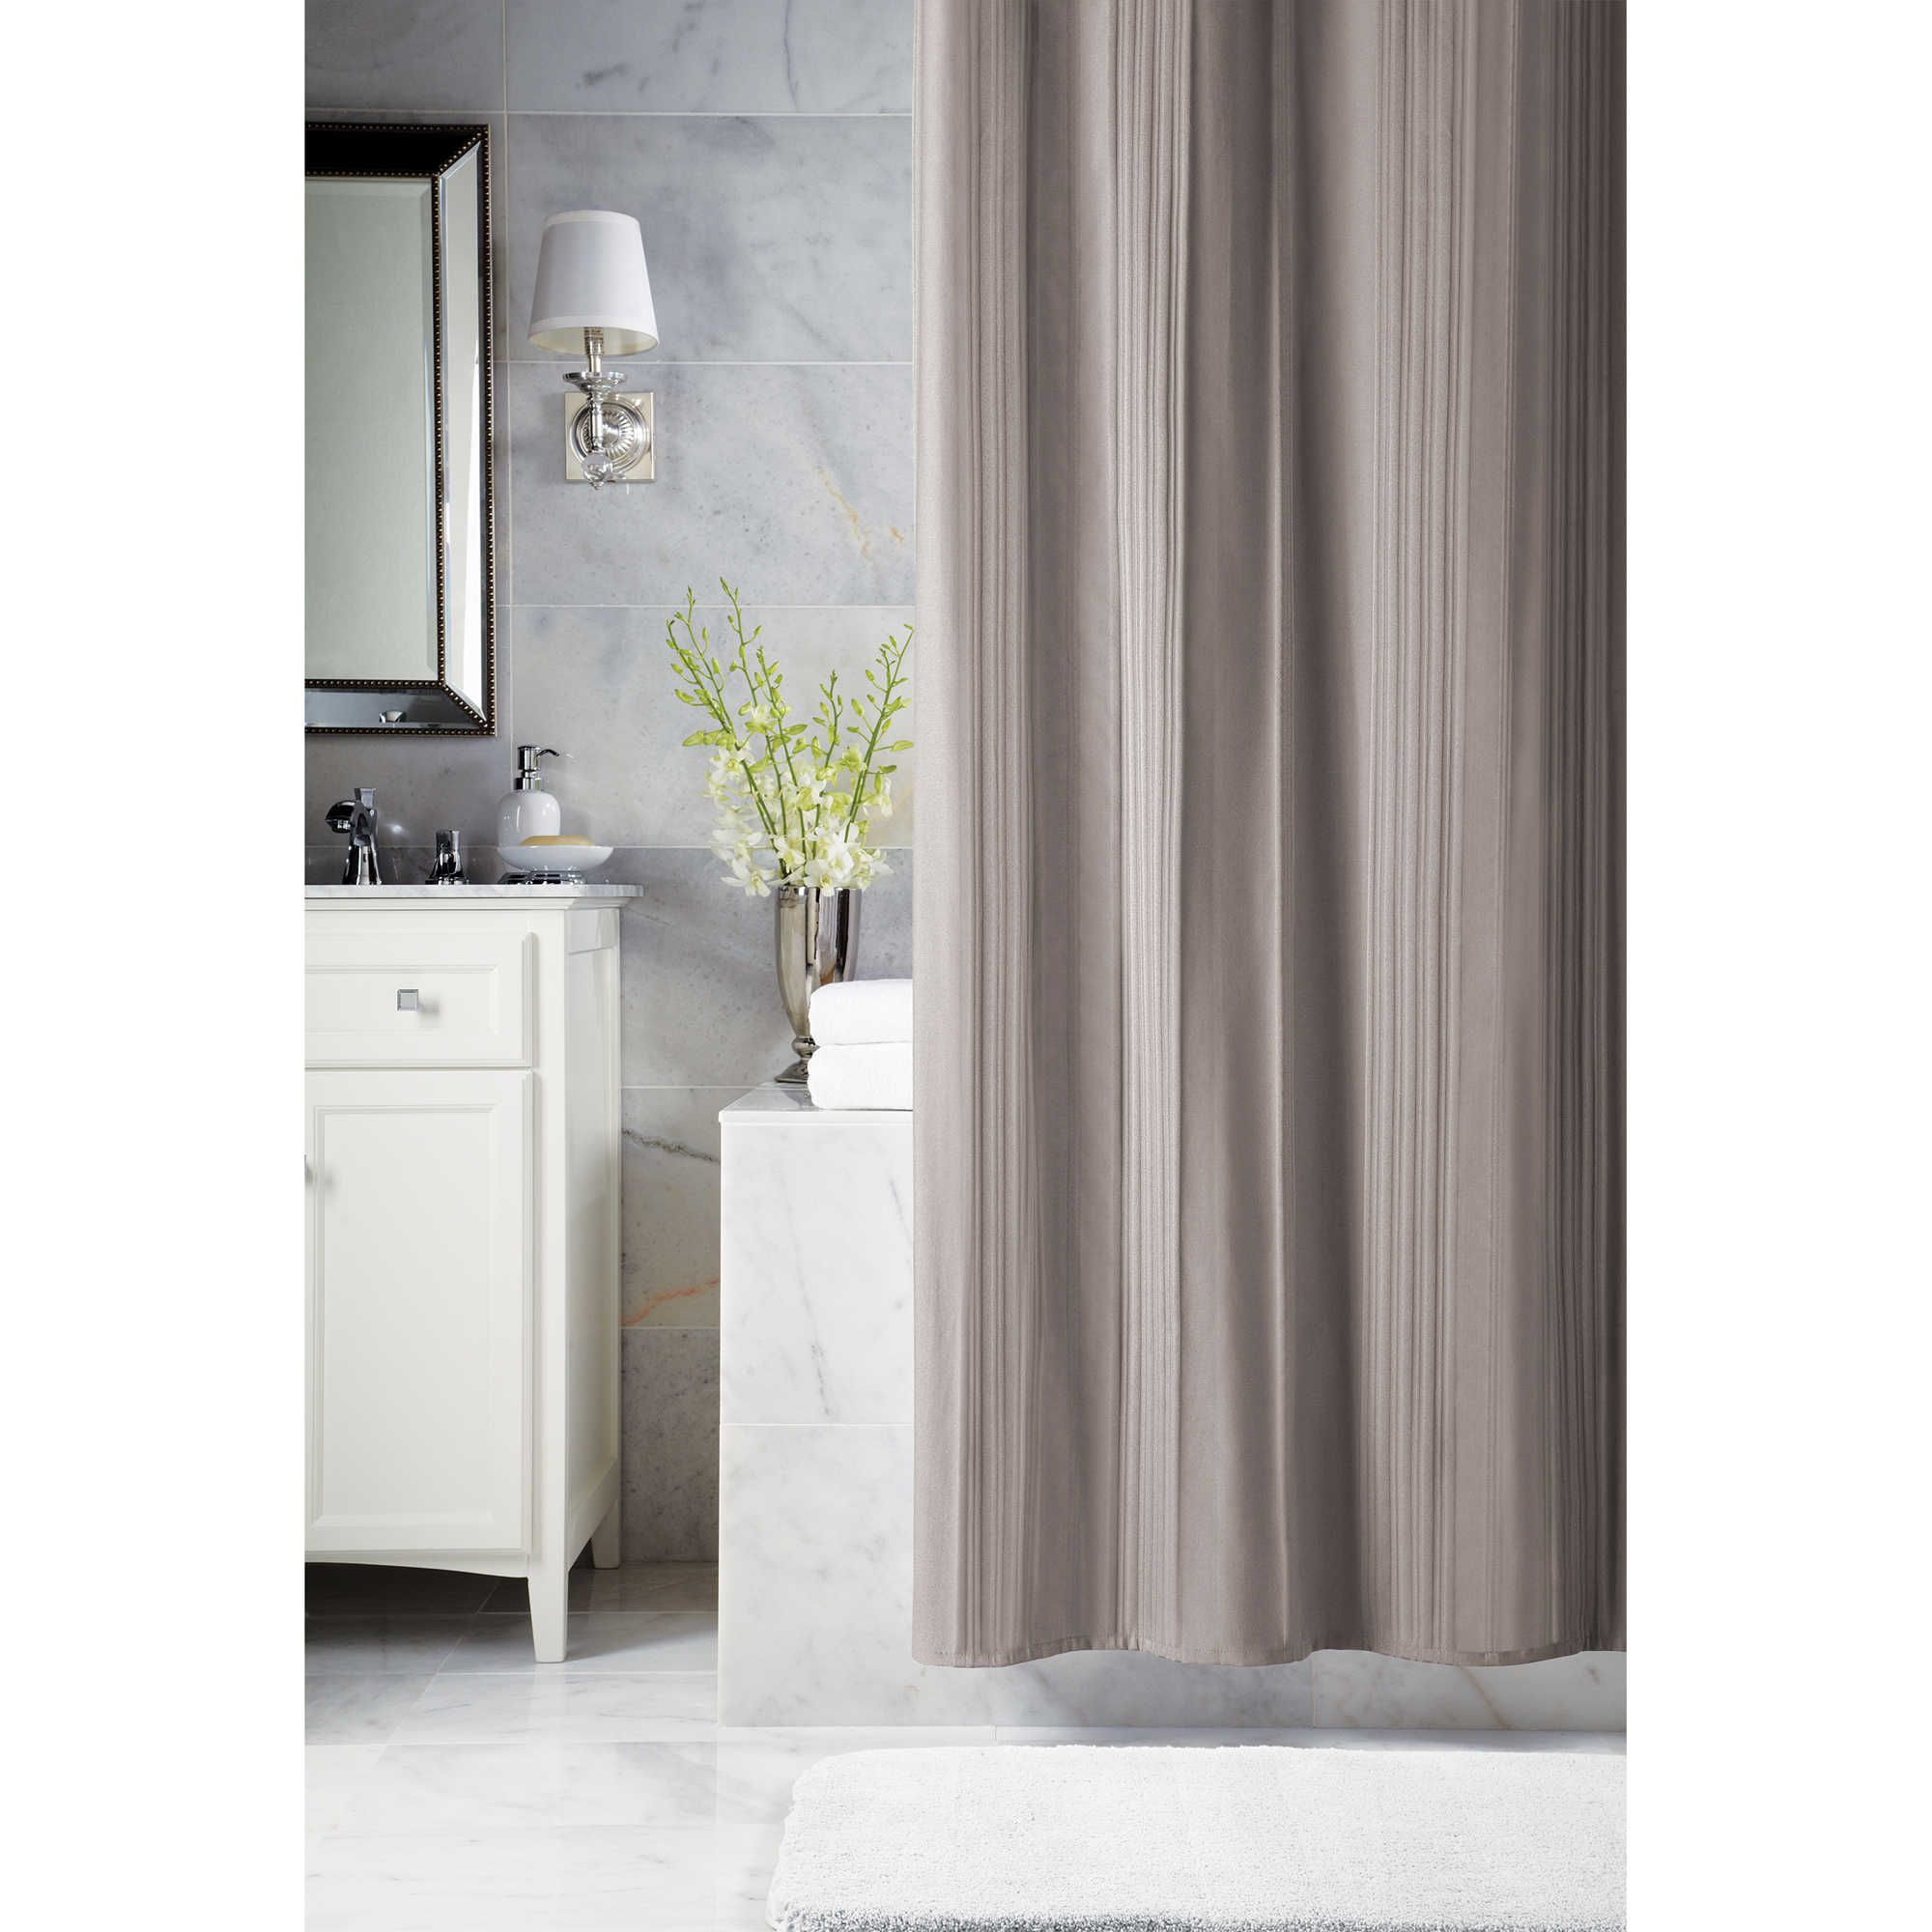 kit curtain interior acrylx stall ella sure s free welcome barrier bath water improved plus kitchen shower home ada soar fit